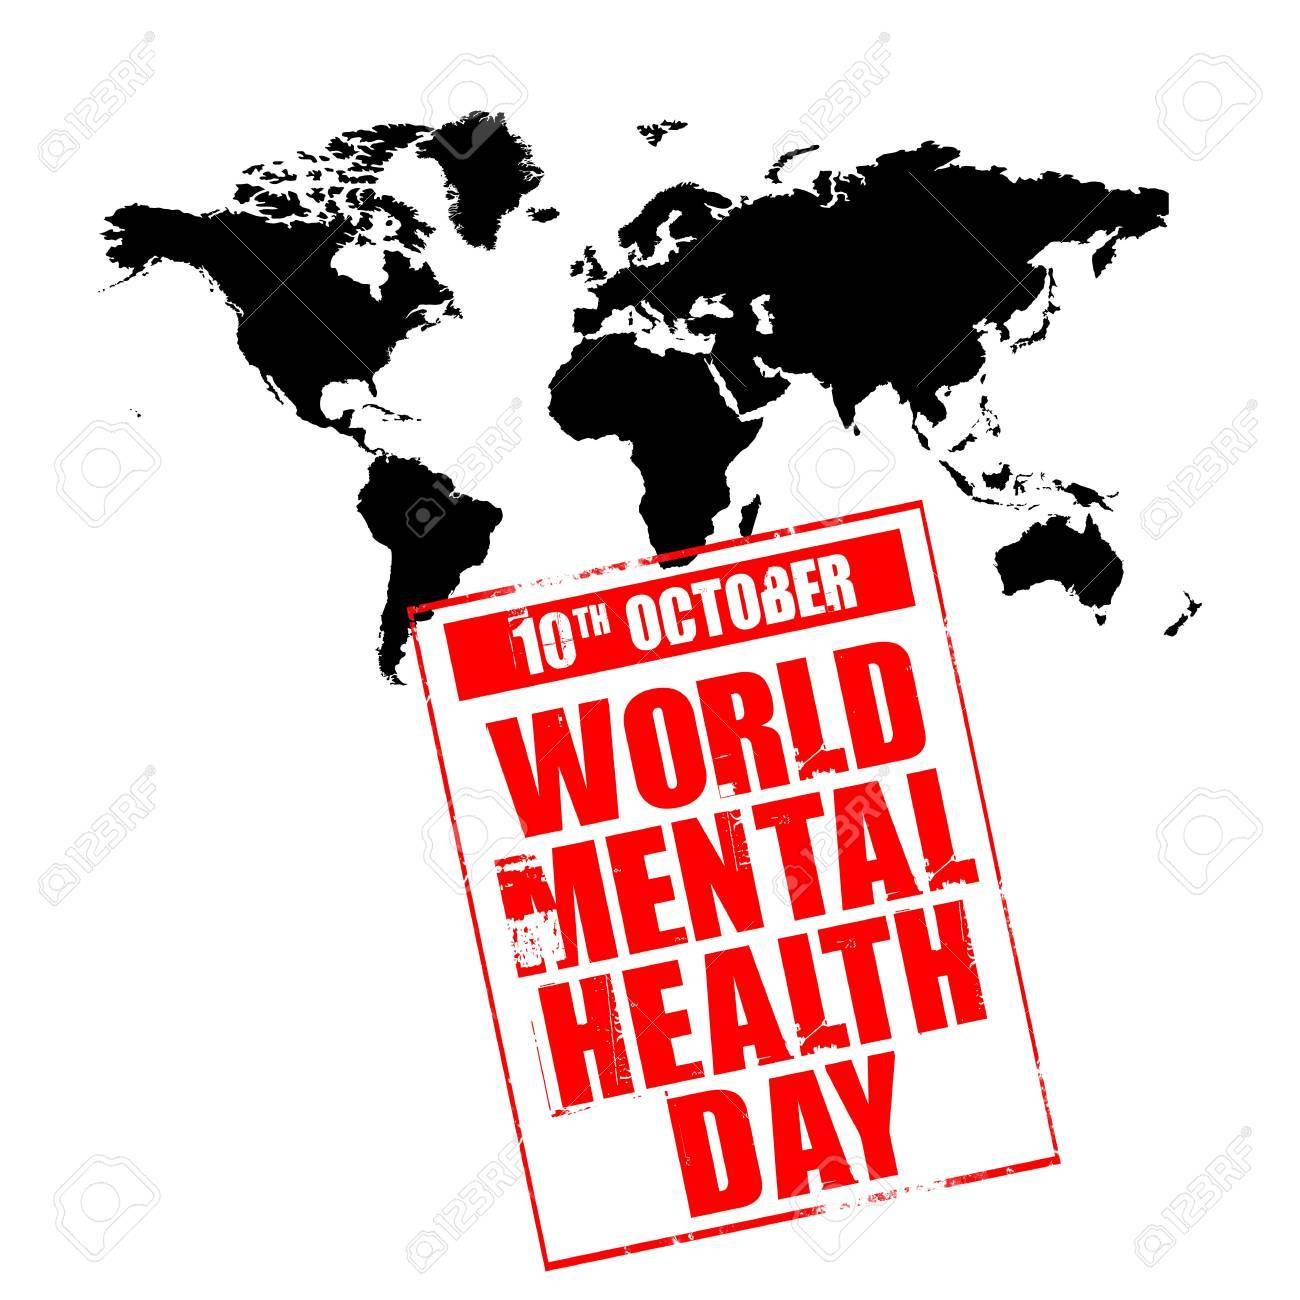 10th october - world mental health day Stock Photo - 3673989